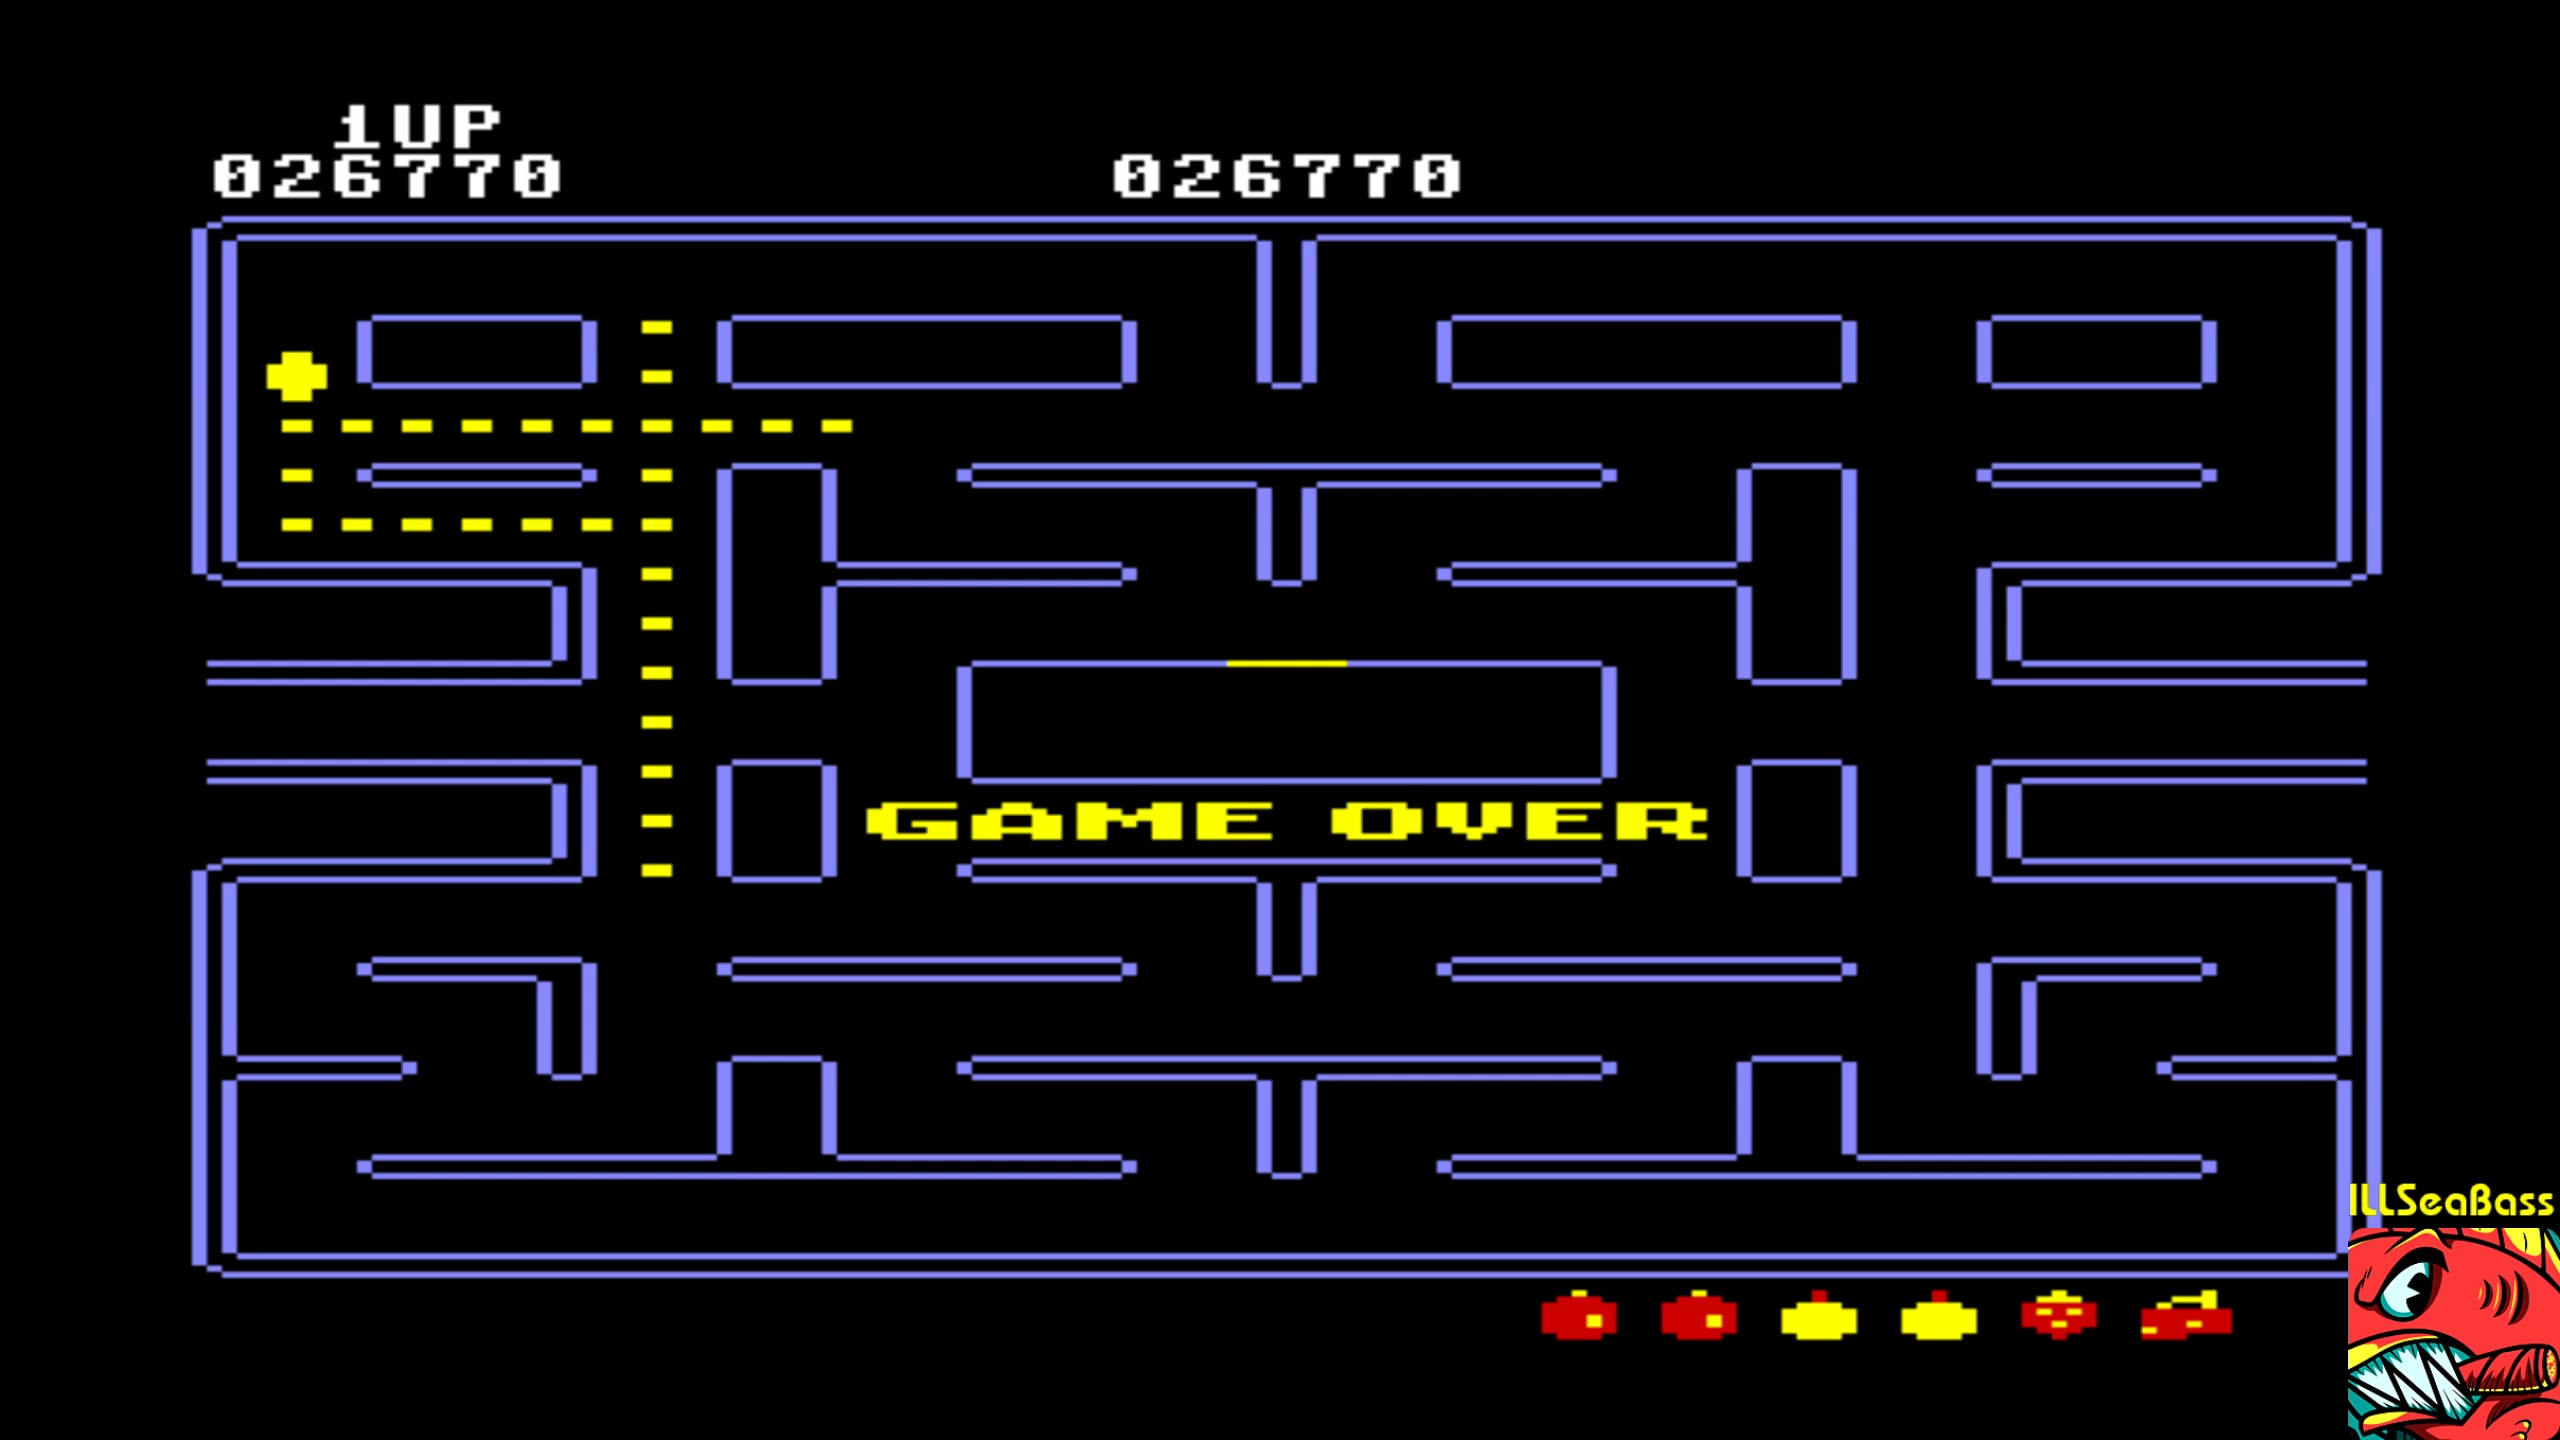 ILLSeaBass: Pac-Man [Strawberry start] (Commodore 64 Emulated) 26,770 points on 2018-02-12 00:19:39